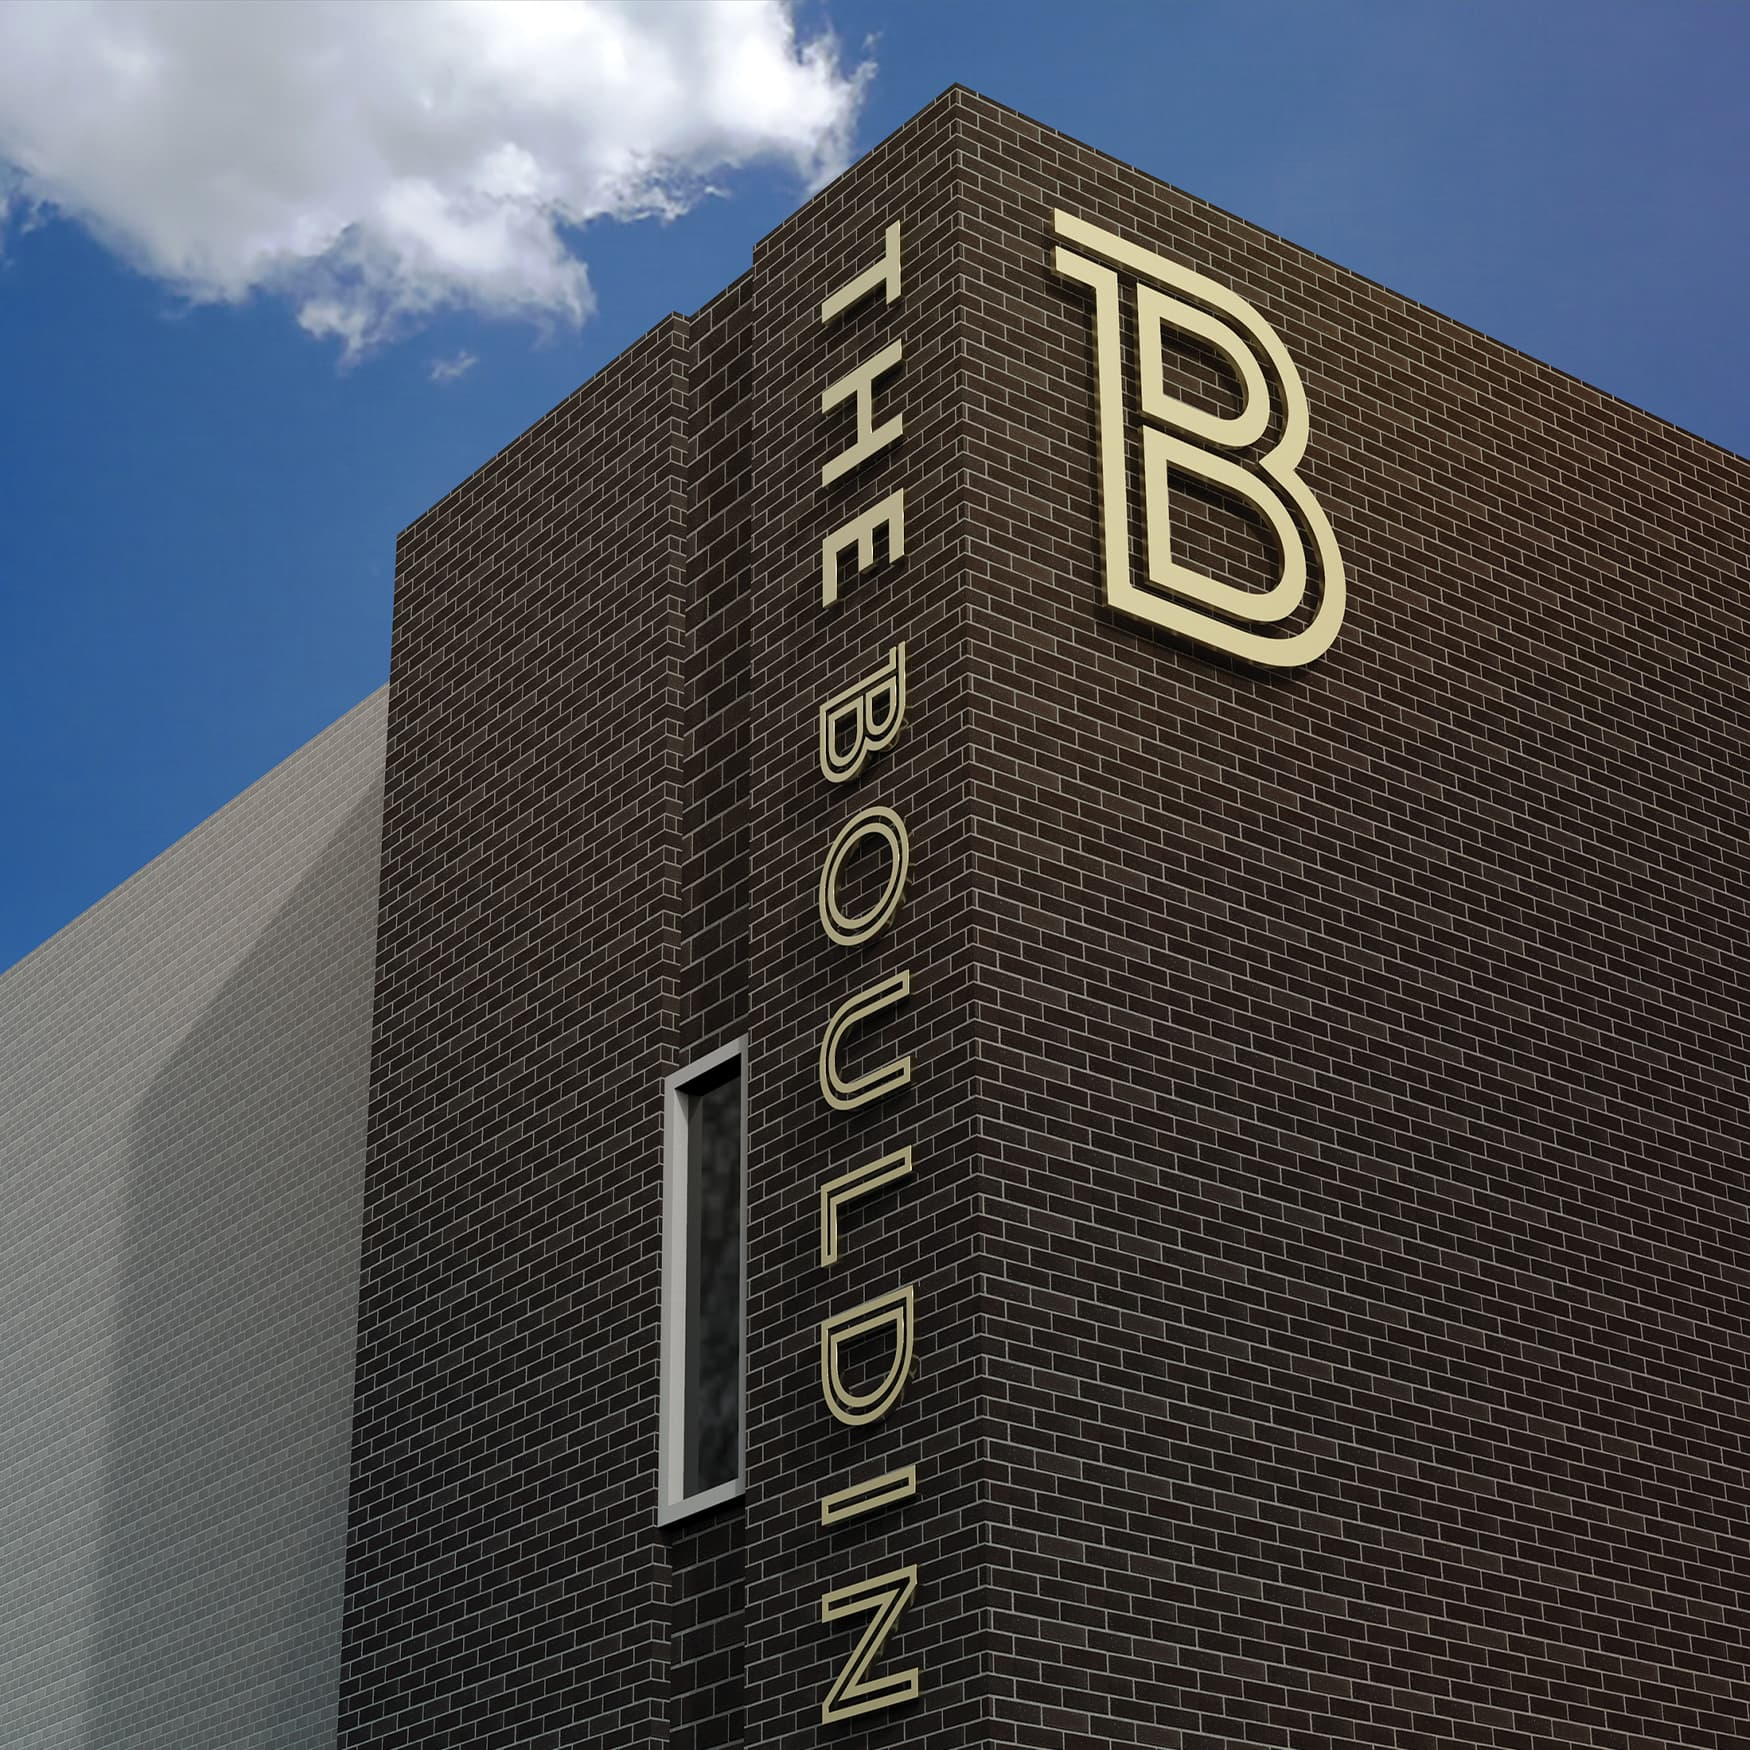 The Bouldin pinned-off building identity signage.